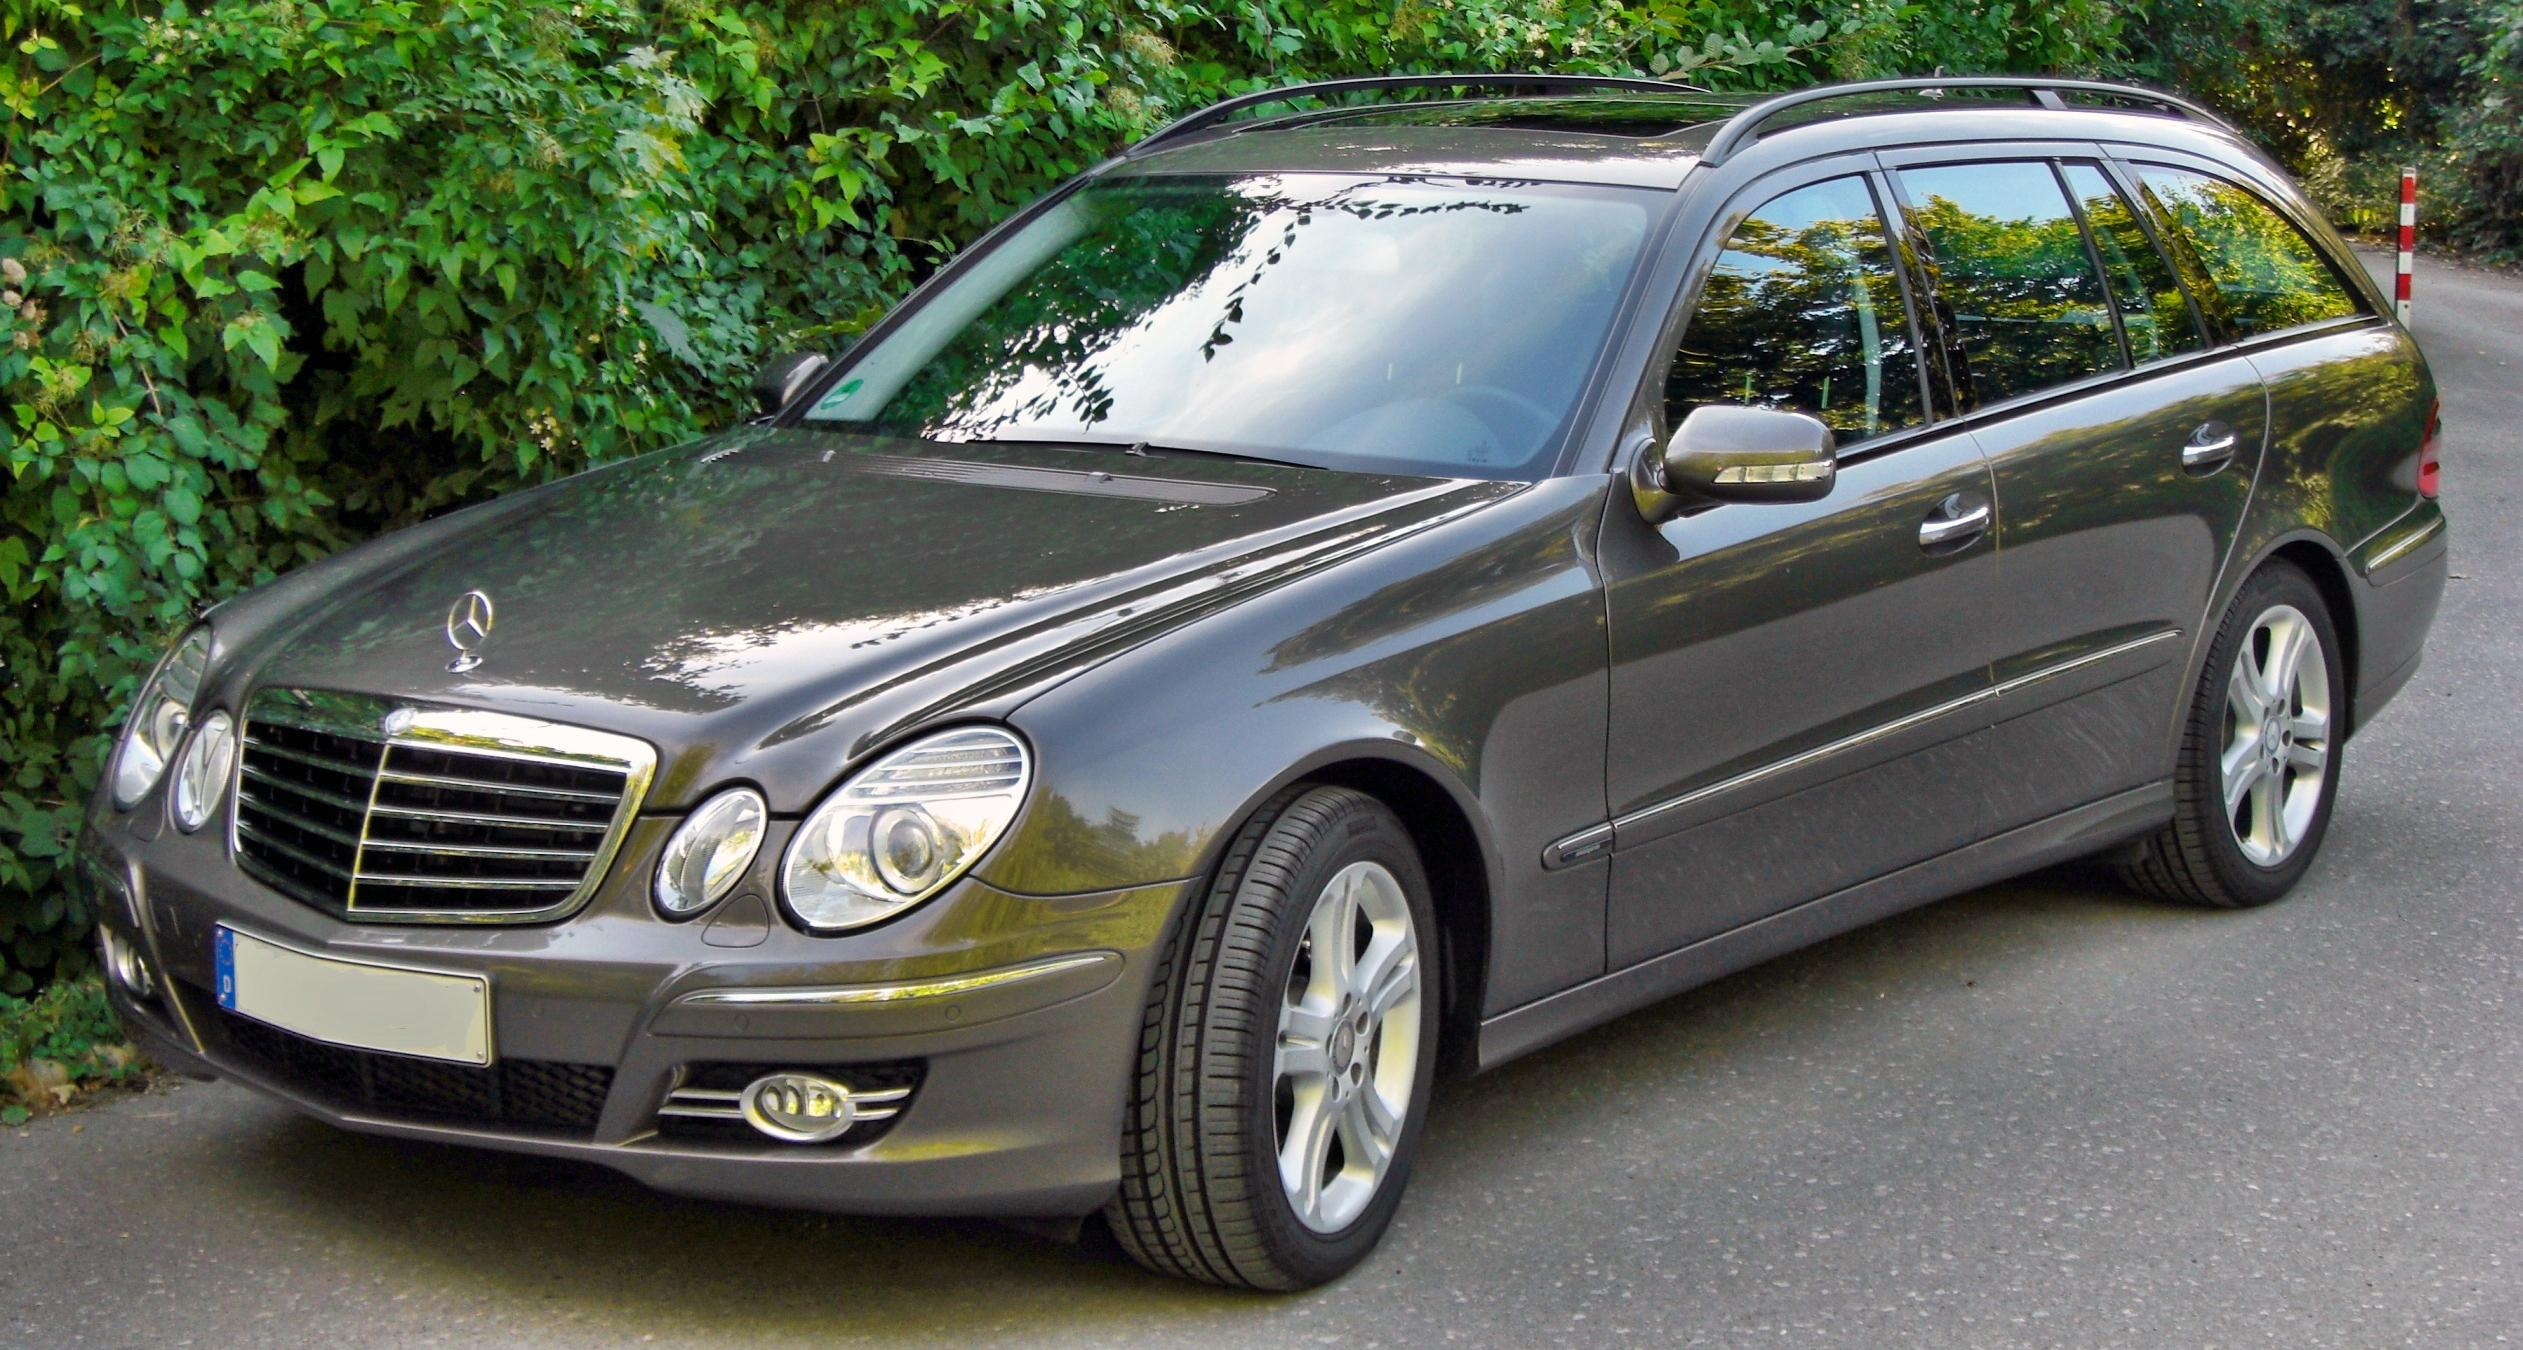 file mercedes e280cdi t modell avantgarde facelift front jpg wikimedia commons. Black Bedroom Furniture Sets. Home Design Ideas